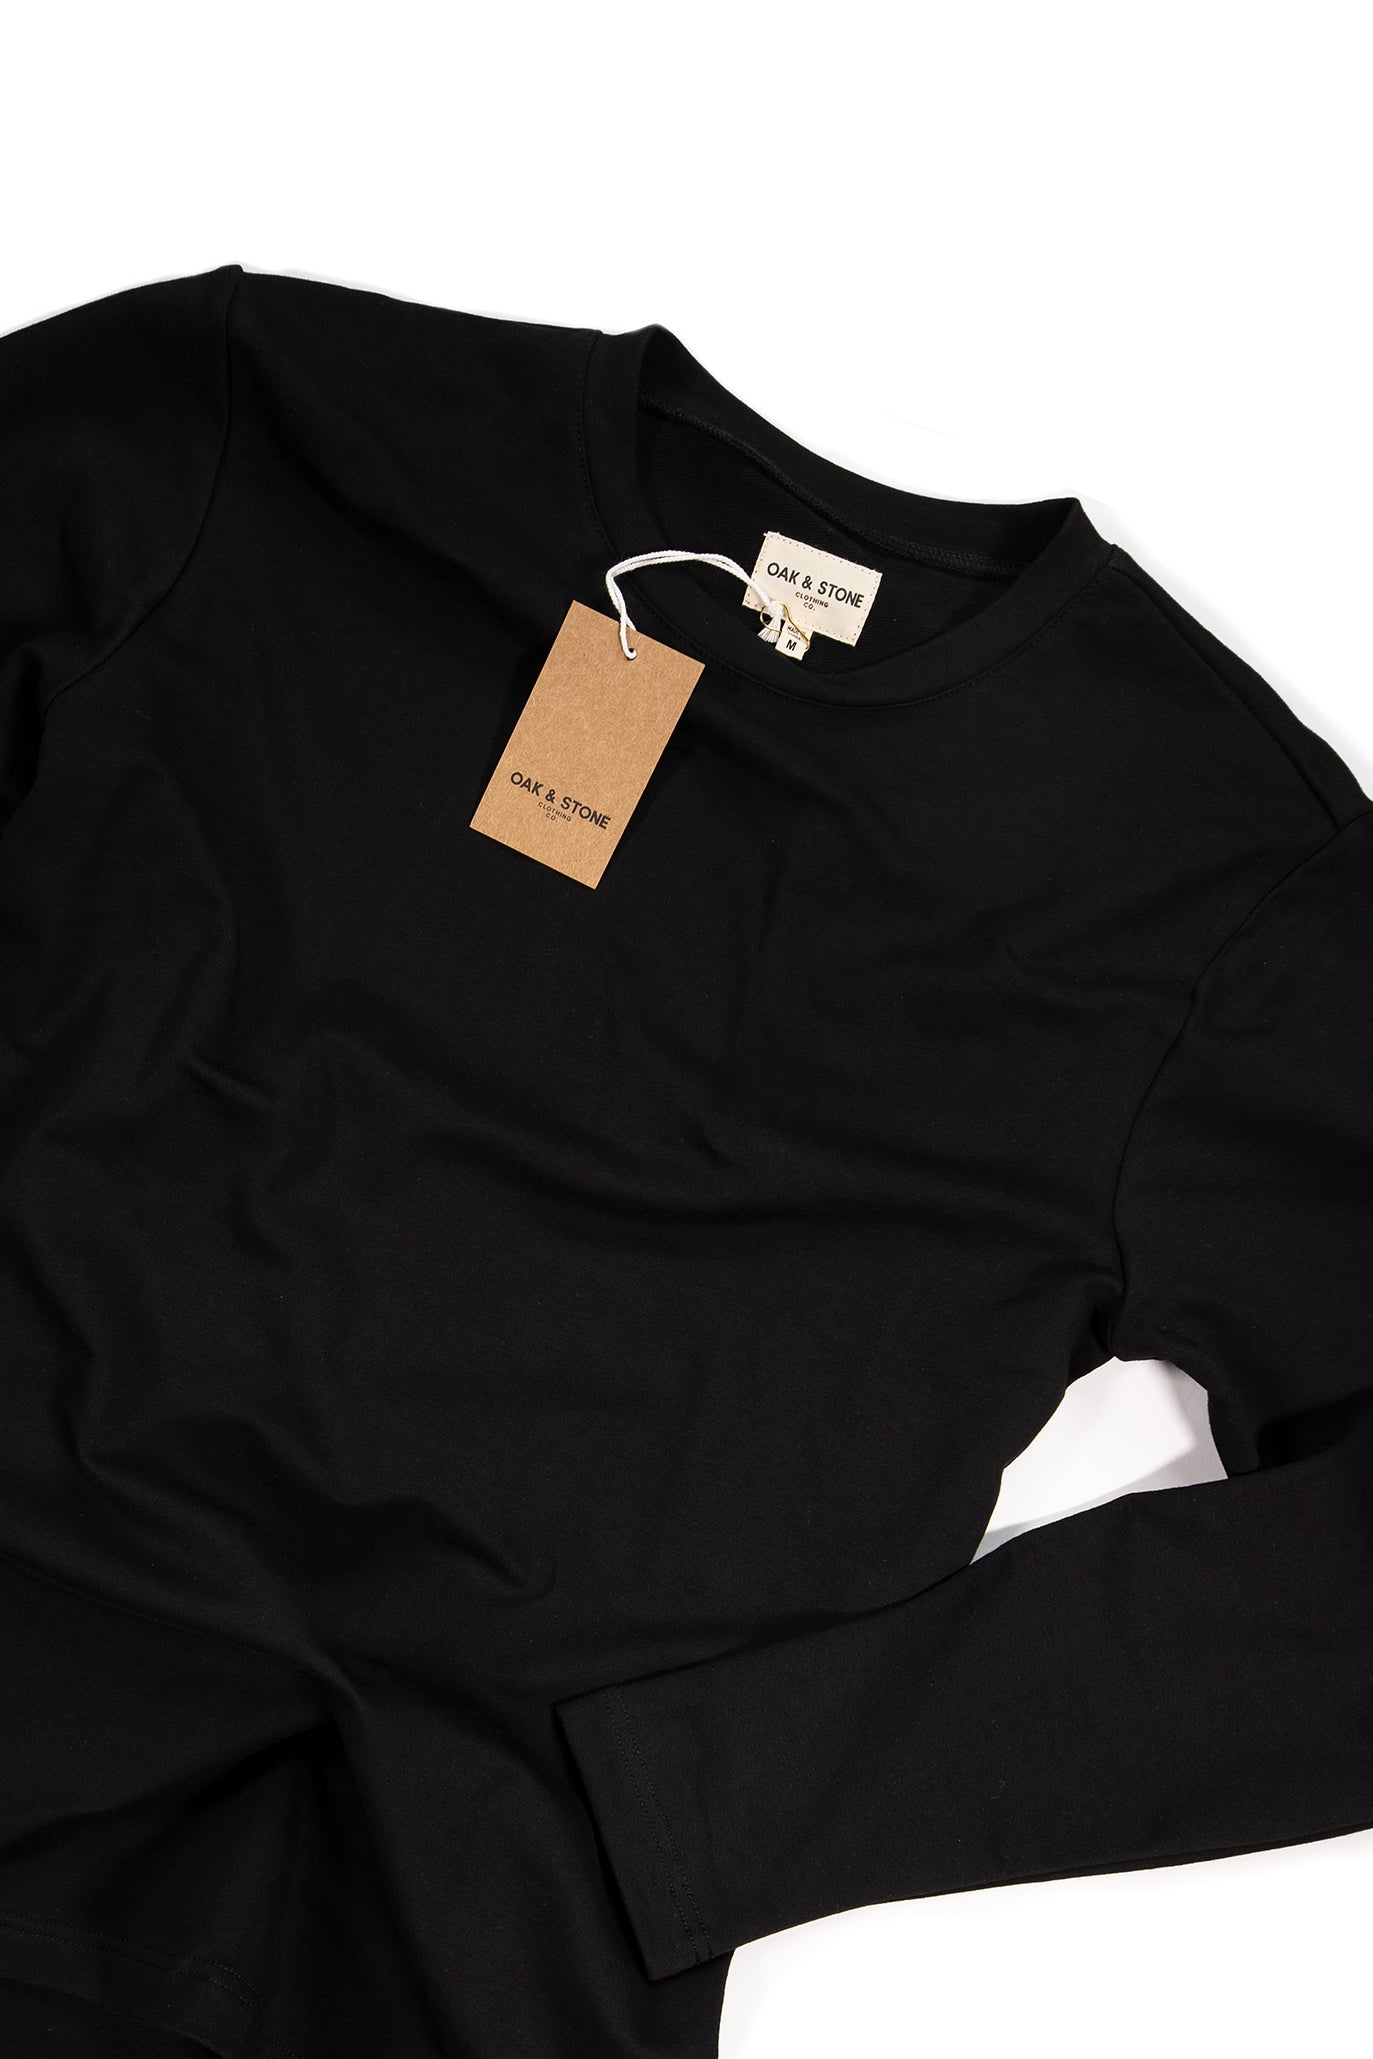 The Classic L/S Tee - Black - Oak & Stone Clothing Co.